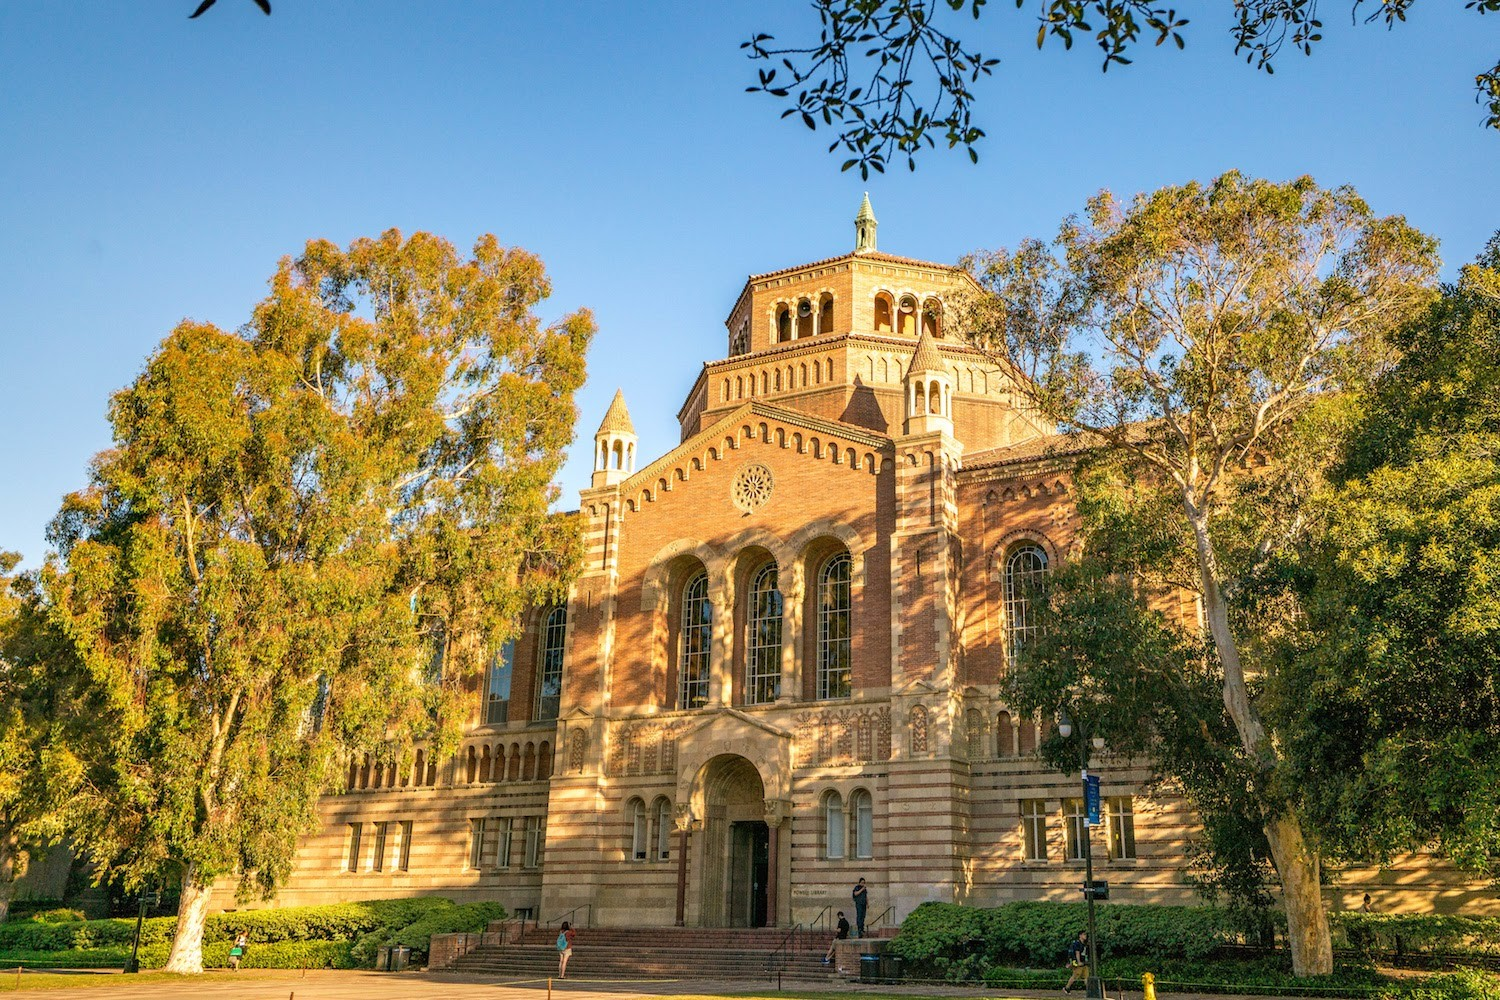 Most beautiful college campuses: University of California Los Angeles